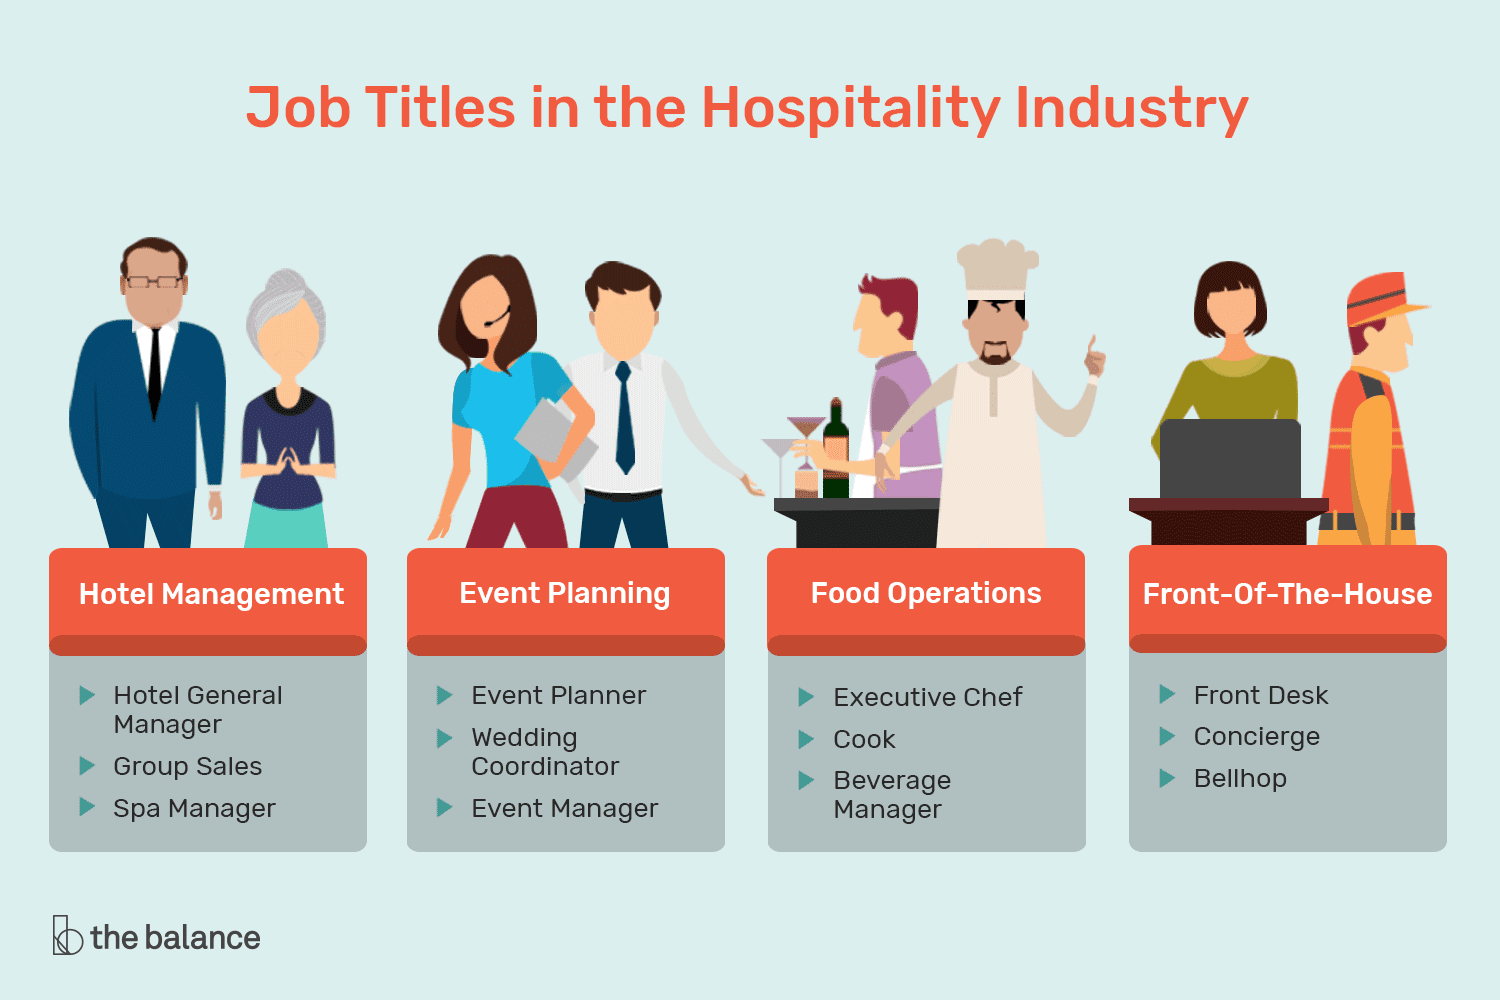 hospitality industry job titles and descriptions